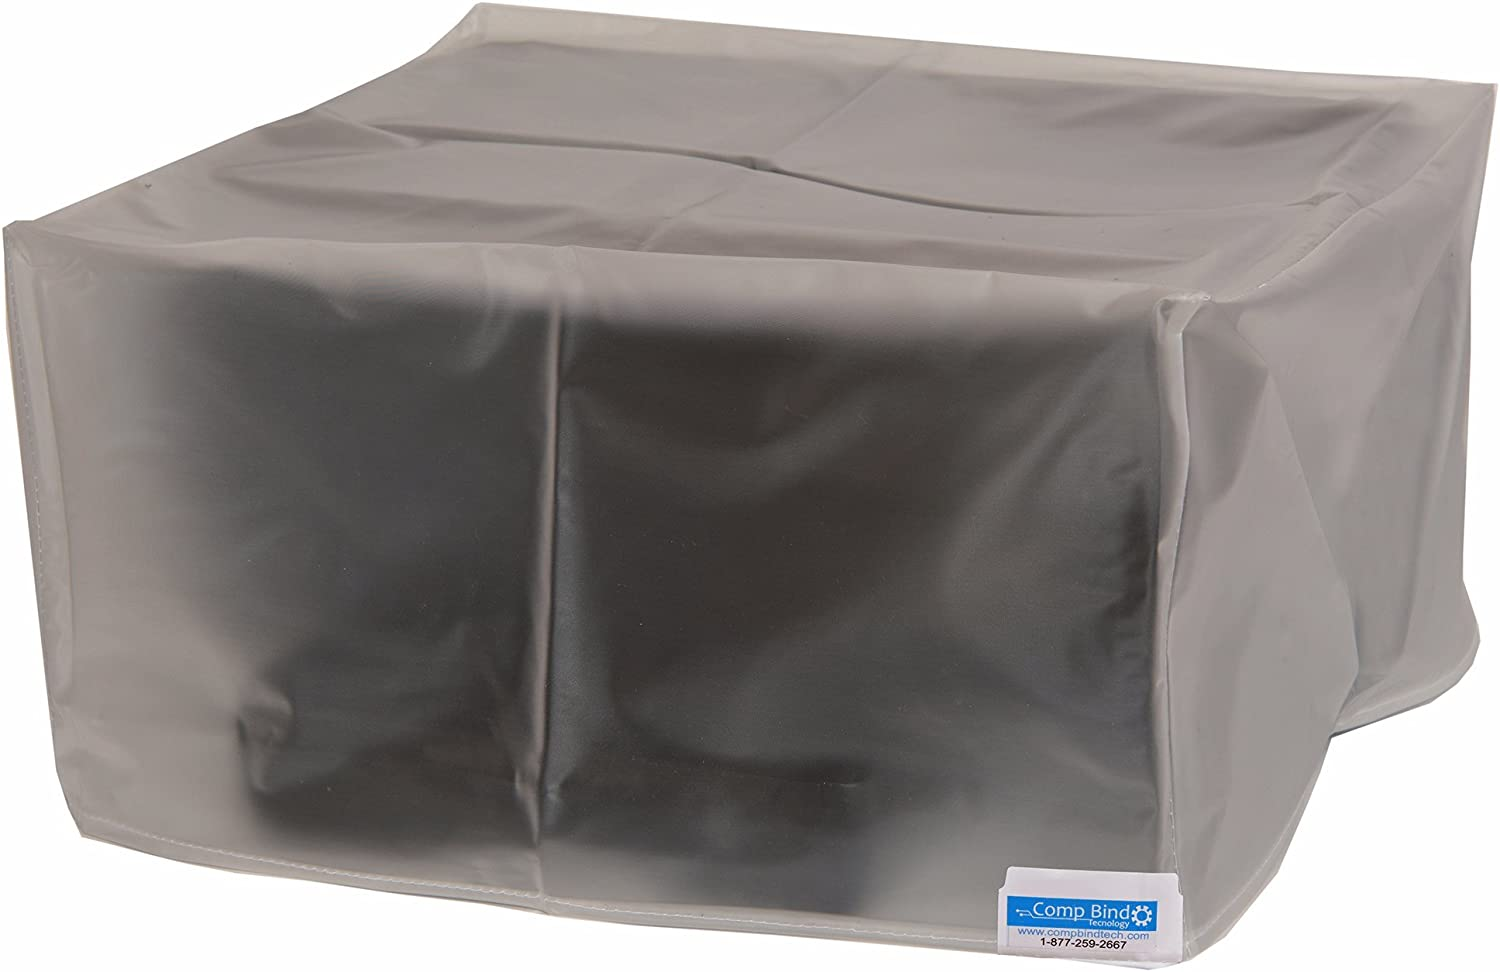 Comp Bind Technology Dust Cover for HP OfficeJet Pro 8610/8620 Printer. Vinyl Dust Cover 19.7''W x 18.5''D x 12''H